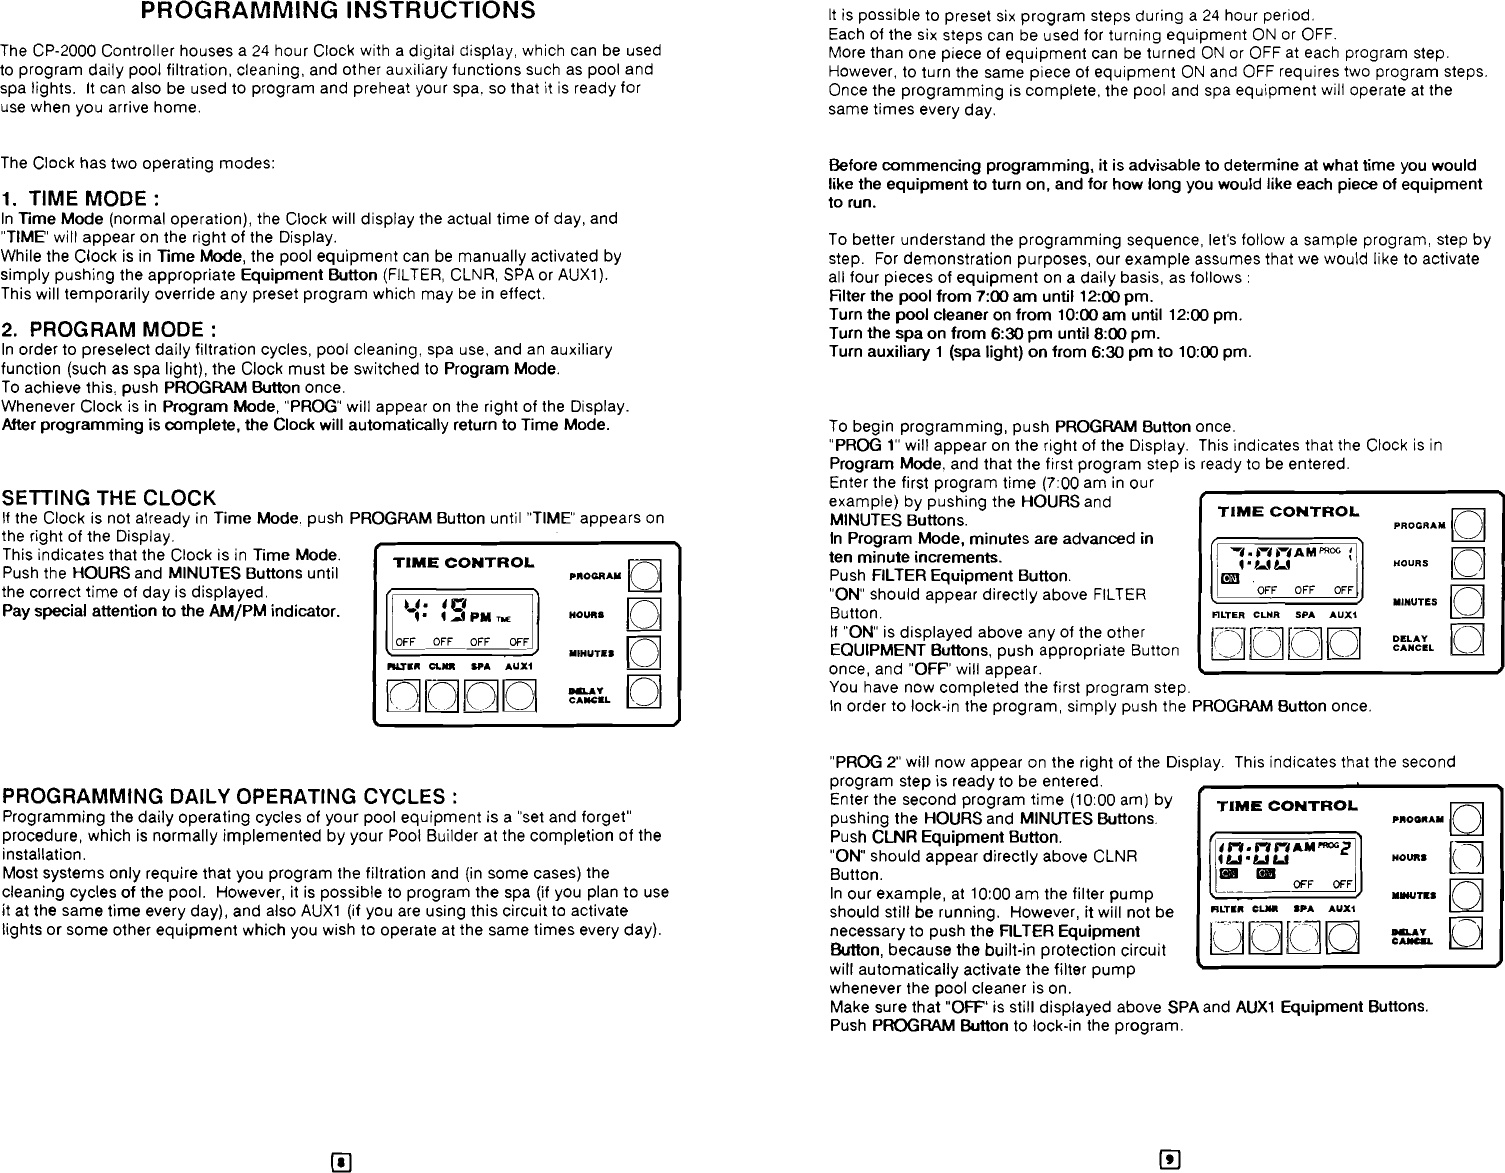 Pentair Pool Spa Control System Cp 2000 Users Manual Wiring Diagram Page 7 Of 8